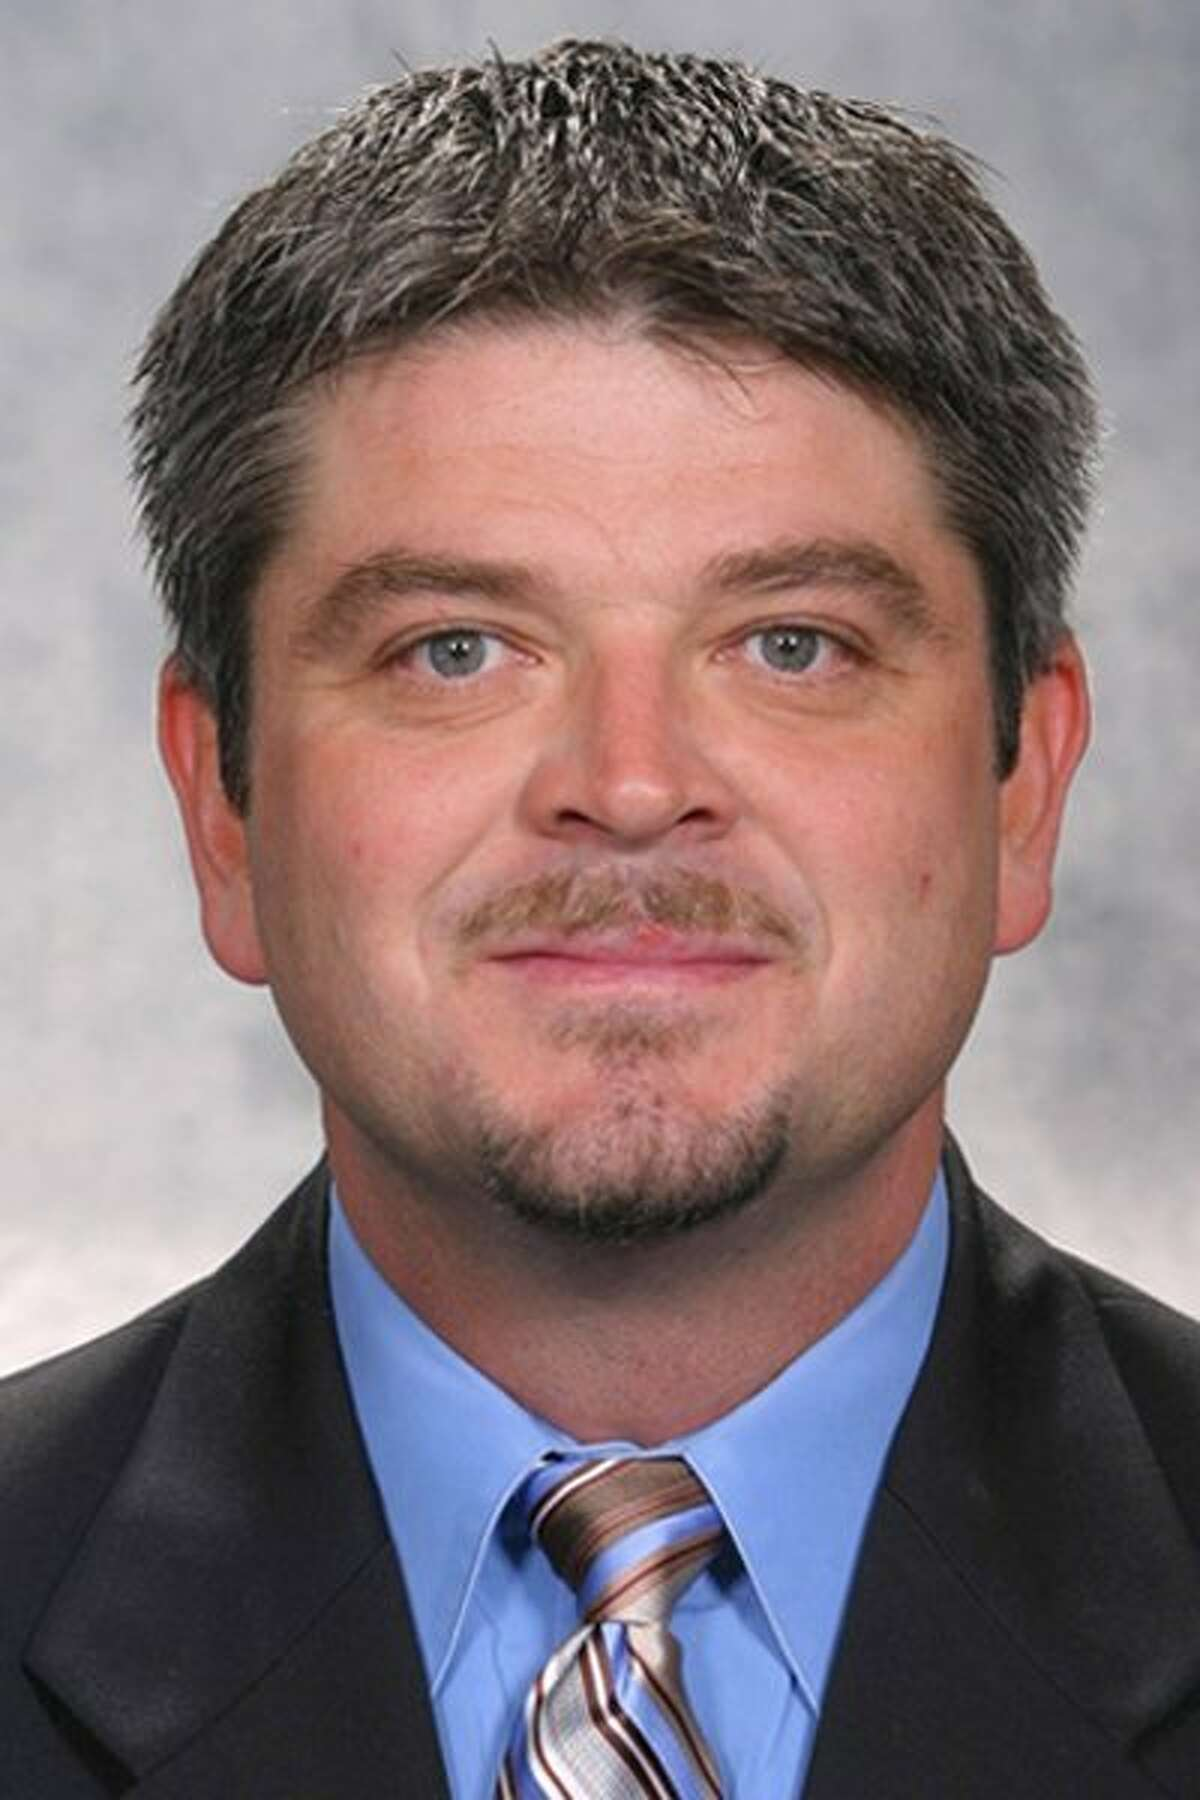 In this 2006 handout photo released by the Detroit Red Wings hockey club, assistant coach Todd McLellan is shown The San Jose Sharks have hired former Detroit Red Wings assistant Todd McLellan as their new head coach. A person familiar with the decision, speaking on condition of anonymity because an announcement has not been made, says that McLellan will be introduced as Ron Wilson's successor at a news conference Thursday, June 12, 2008. (AP Photo/Detroit Red Wings) ** NO SALES ** Ran on: 06-12-2008 McLellan Ran on: 10-08-2008 Barry Bonds Ran on: 10-08-2008 Ran on: 04-09-2009 Photo caption Dummy text goes here. Dummy text goes here. Dummy text goes here. Dummy text goes here. Dummy text goes here. Dummy text goes here. Dummy text goes here. Dummy text goes here.###Photo: names09_mclellanPH1162771200Detrot Red Wings###Live Caption:In this 2006 handout photo released by the Detroit Red Wings hockey club, assistant coach Todd McLellan is shown The San Jose Sharks have hired former Detroit Red Wings assistant Todd McLellan as their new head coach. A person familiar with the decision, speaking on condition of anonymity because an announcement has not been made, says that McLellan will be introduced as Ron Wilson's successor at a news conference Thursday, June 12, 2008. (AP Photo-Detroit Red Wings) ** NO SALES **###Caption History:In this 2006 handout photo released by the Detroit Red Wings hockey club, assistant coach Todd McLellan is shown The San Jose Sharks have hired former Detroit Red Wings assistant Todd McLellan as their new head coach. A person familiar with the decision, speaking on condition of anonymity because an announcement has not been made, says that McLellan will be introduced as...